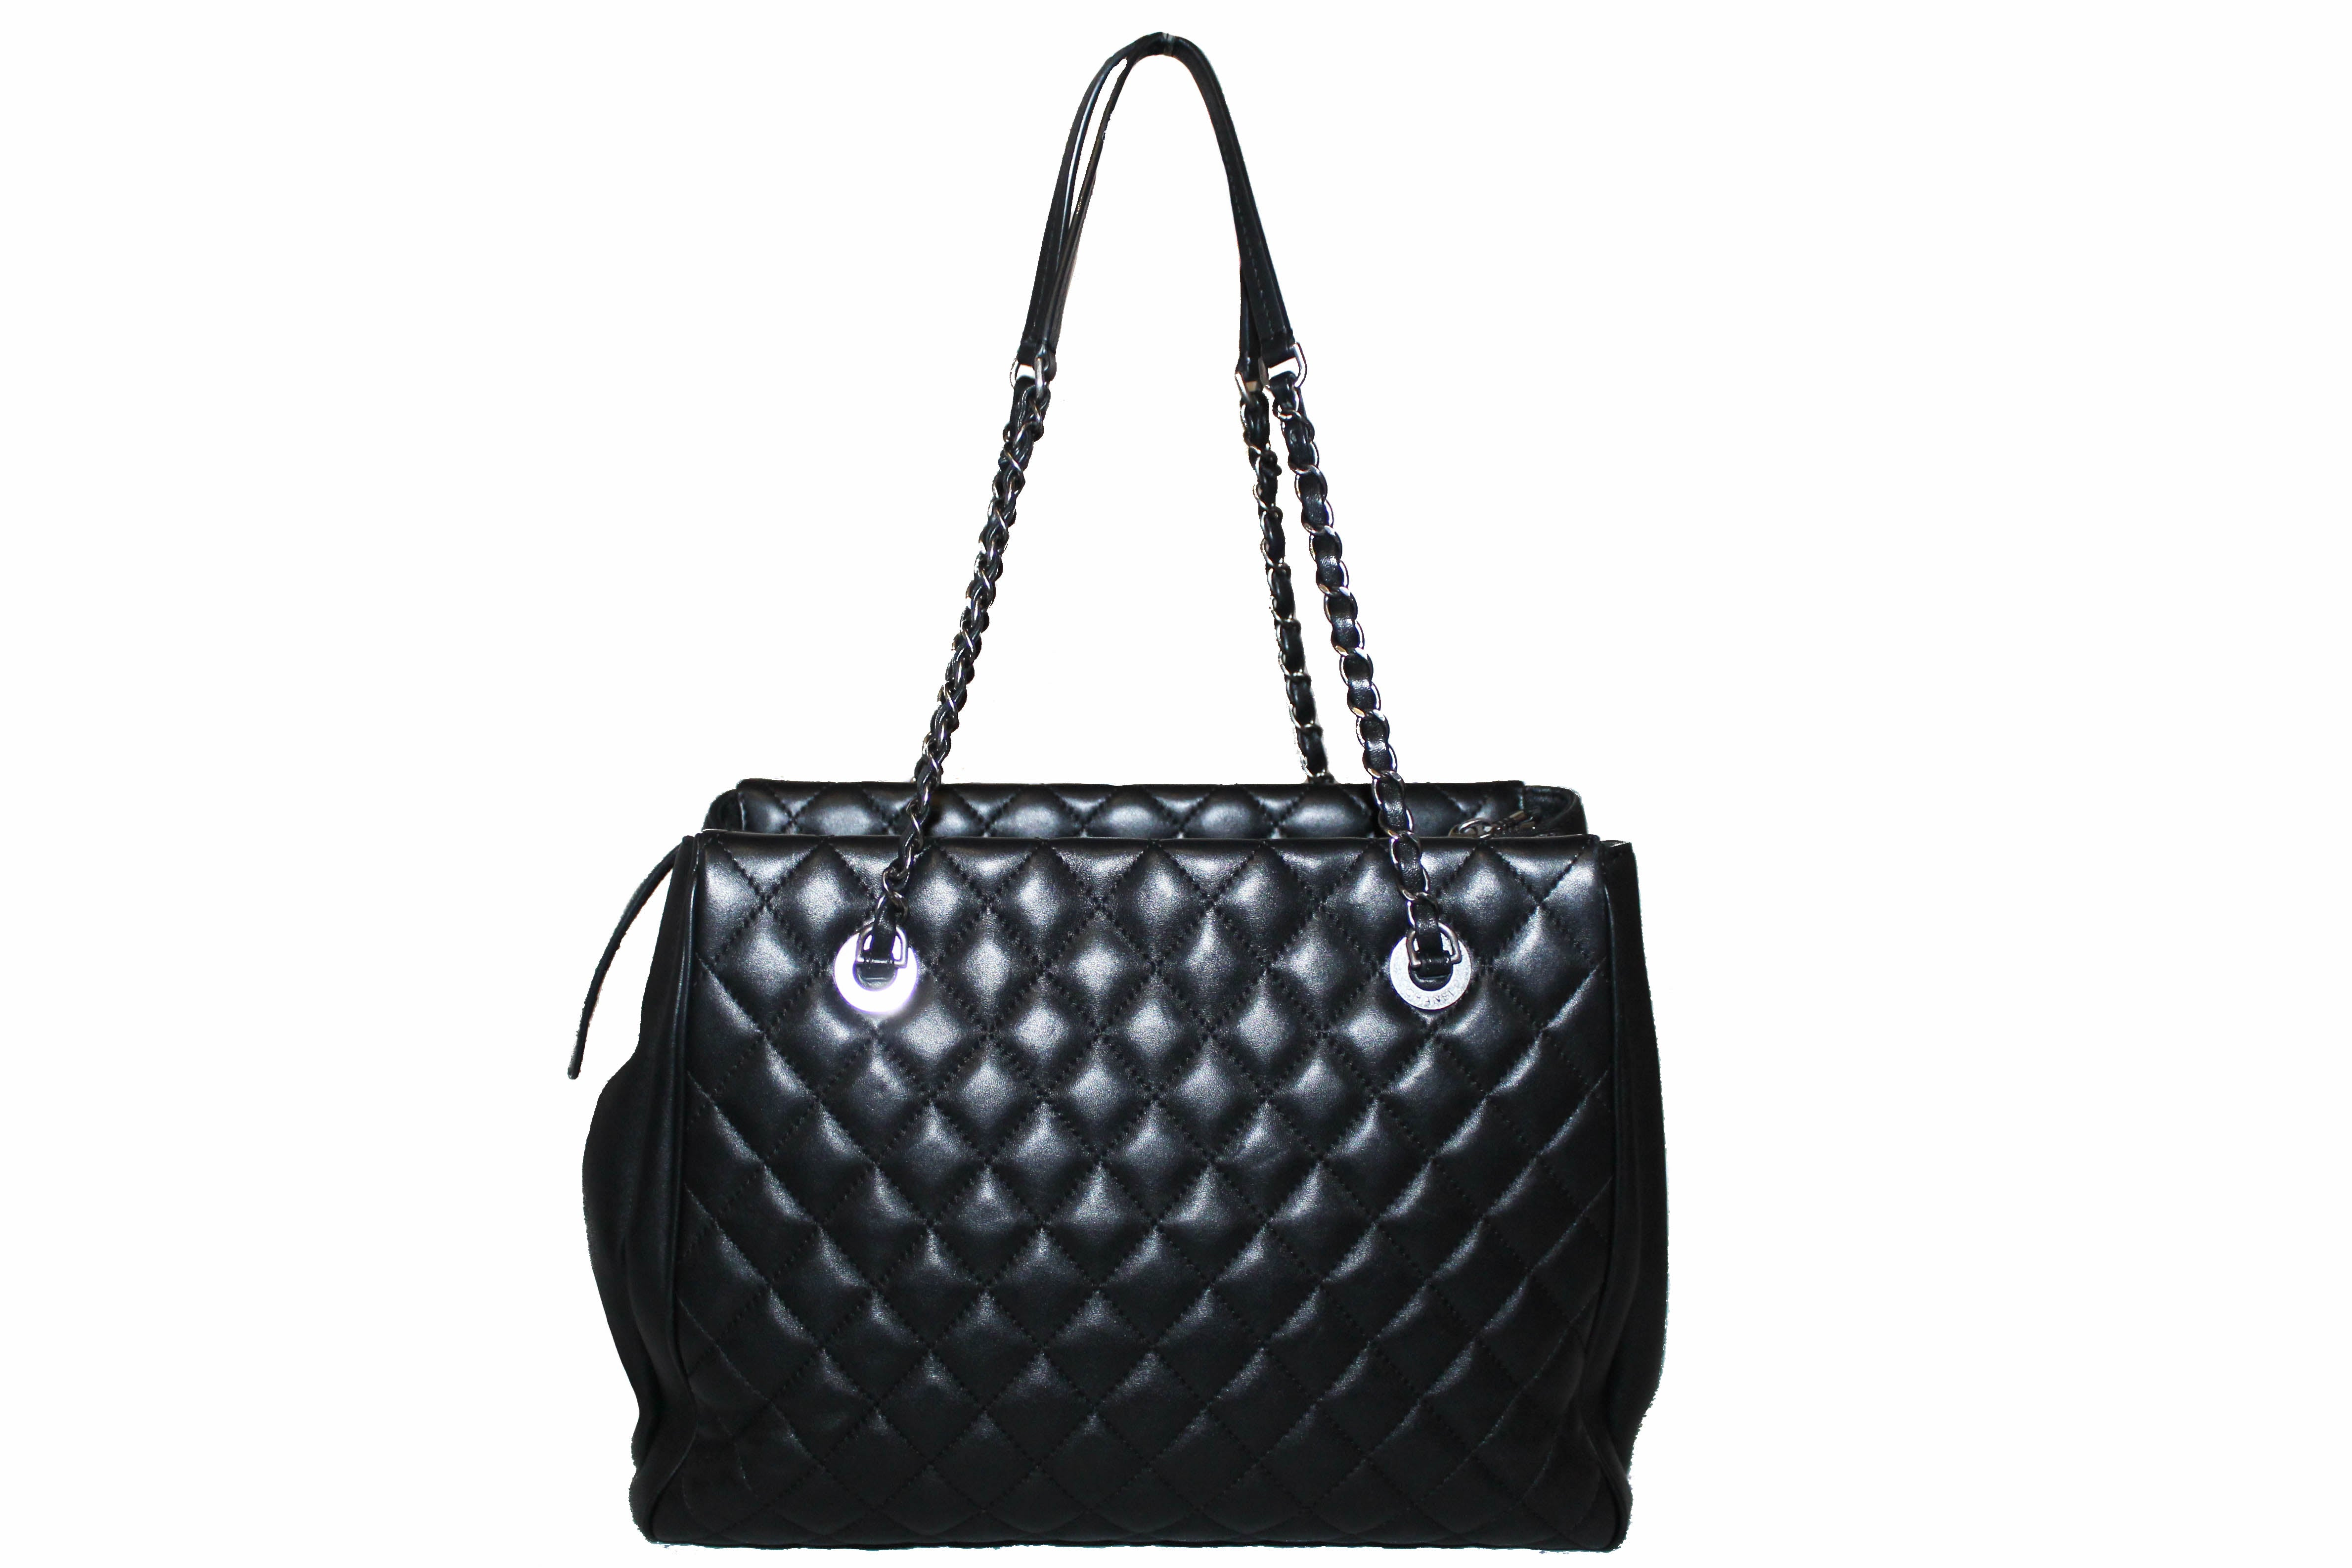 Authentic Chanel Black Quilted Lambskin Leather Tote Bag